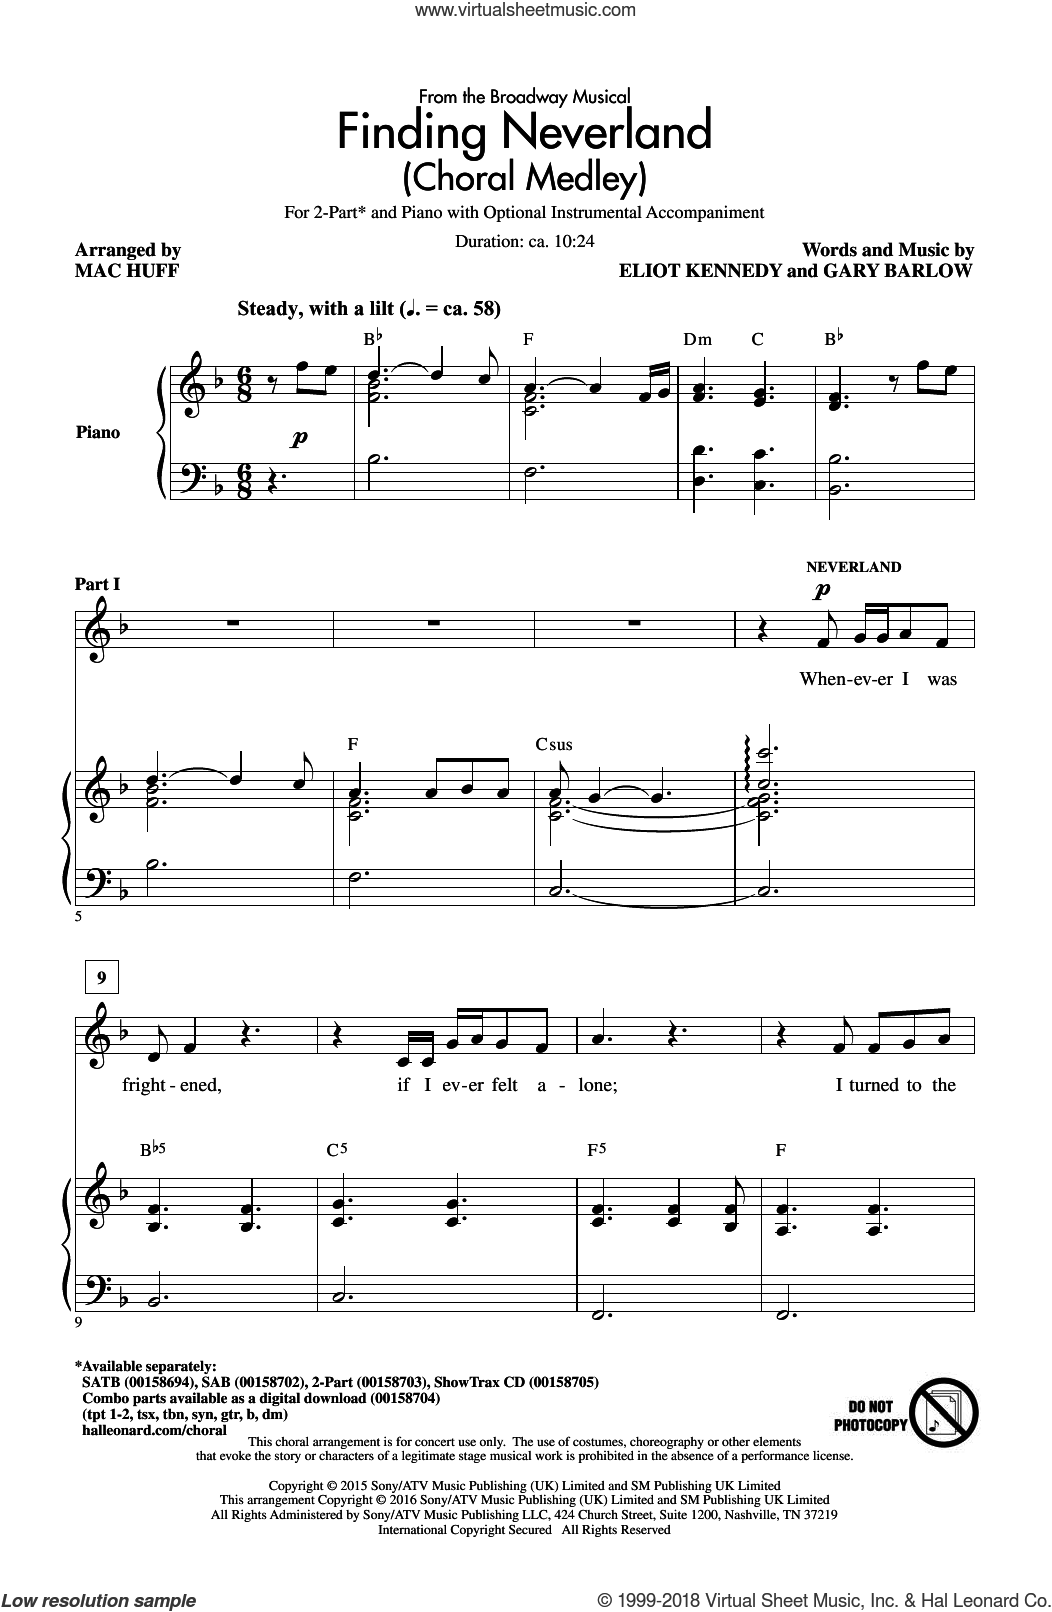 Finding Neverland (Choral Medley) sheet music for choir (2-Part) by Gary Barlow, Mac Huff and Eliot Kennedy, intermediate duet